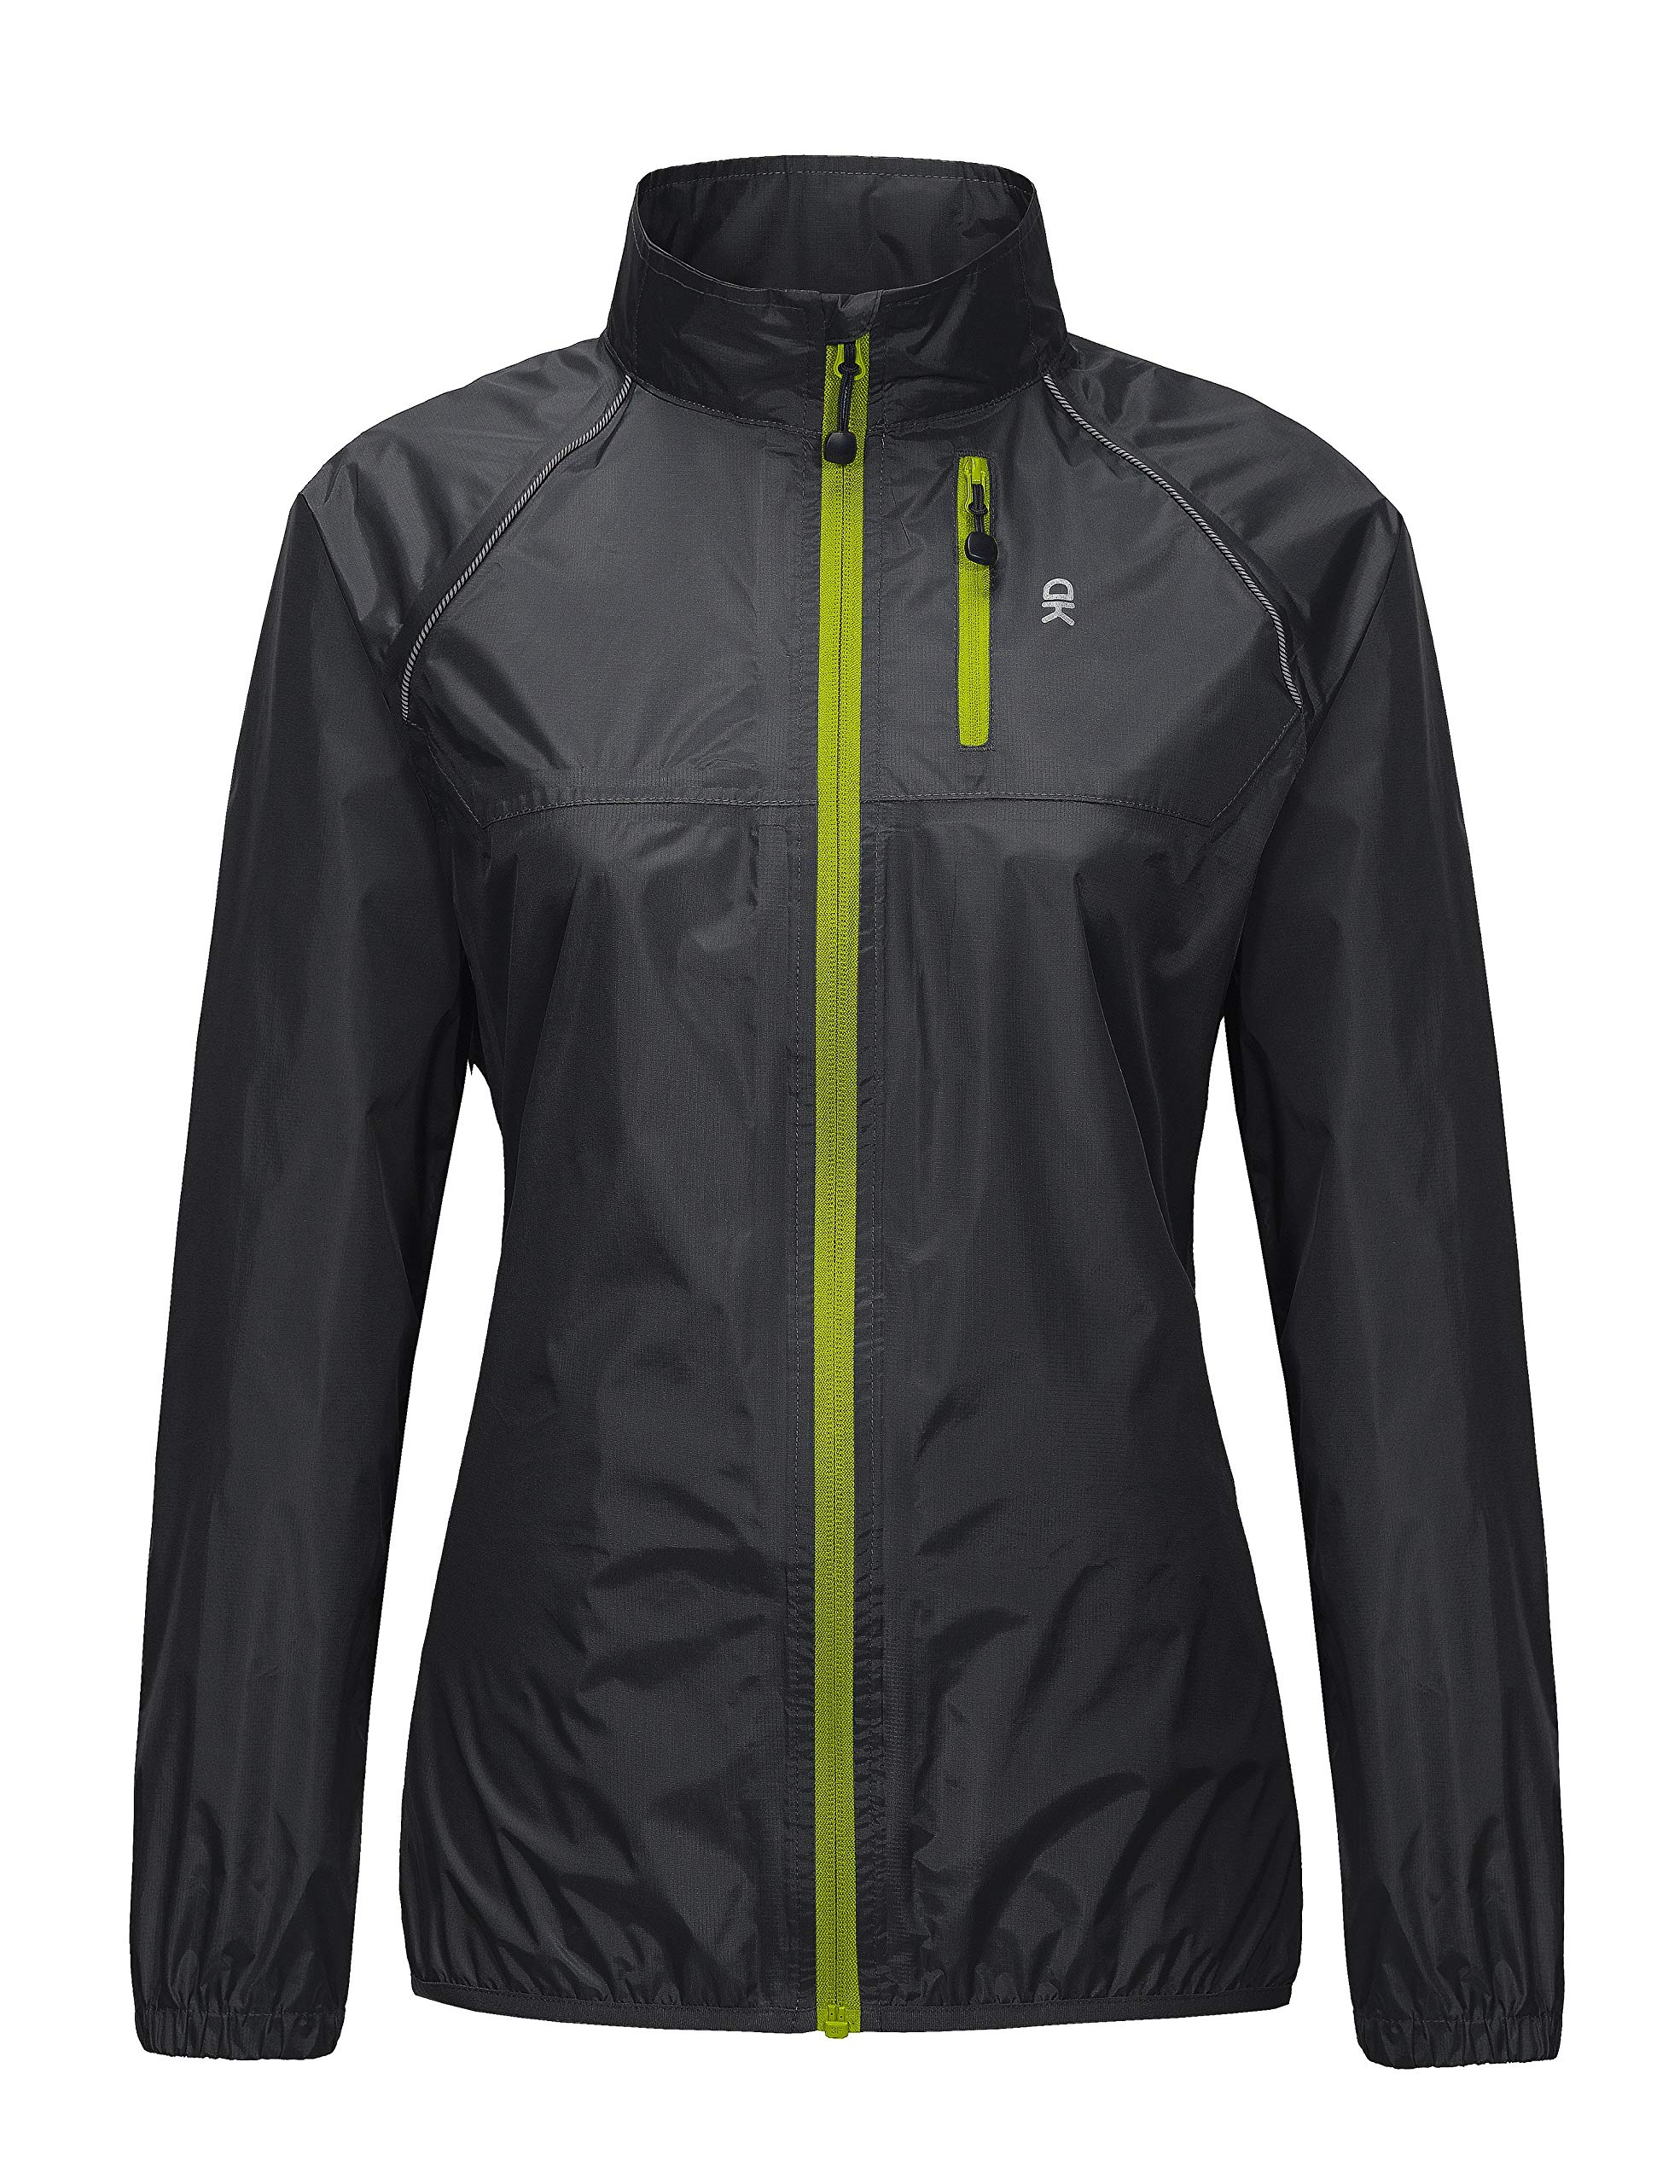 Little Donkey Andy Women's Waterproof Cycling Bike Jacket, Running Rain Jacket, Windbreaker, Ultralight and Packable Black XS by Little Donkey Andy